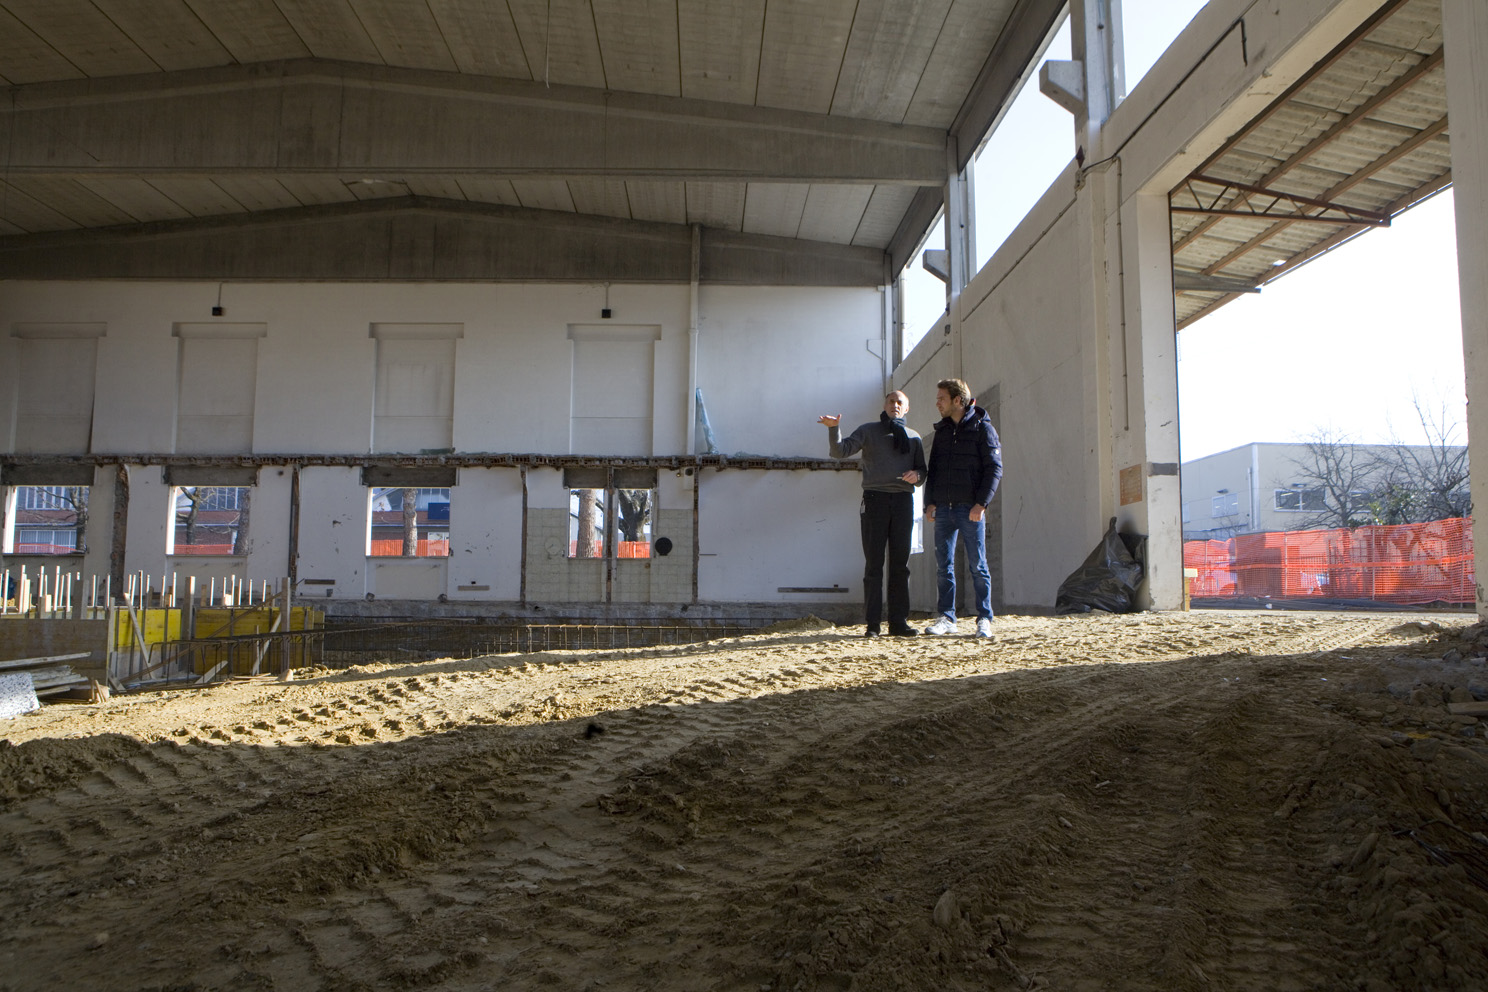 Franz Tost shows Jean-Eric Vergne around the site of the newest part of the Toro Rosso factory